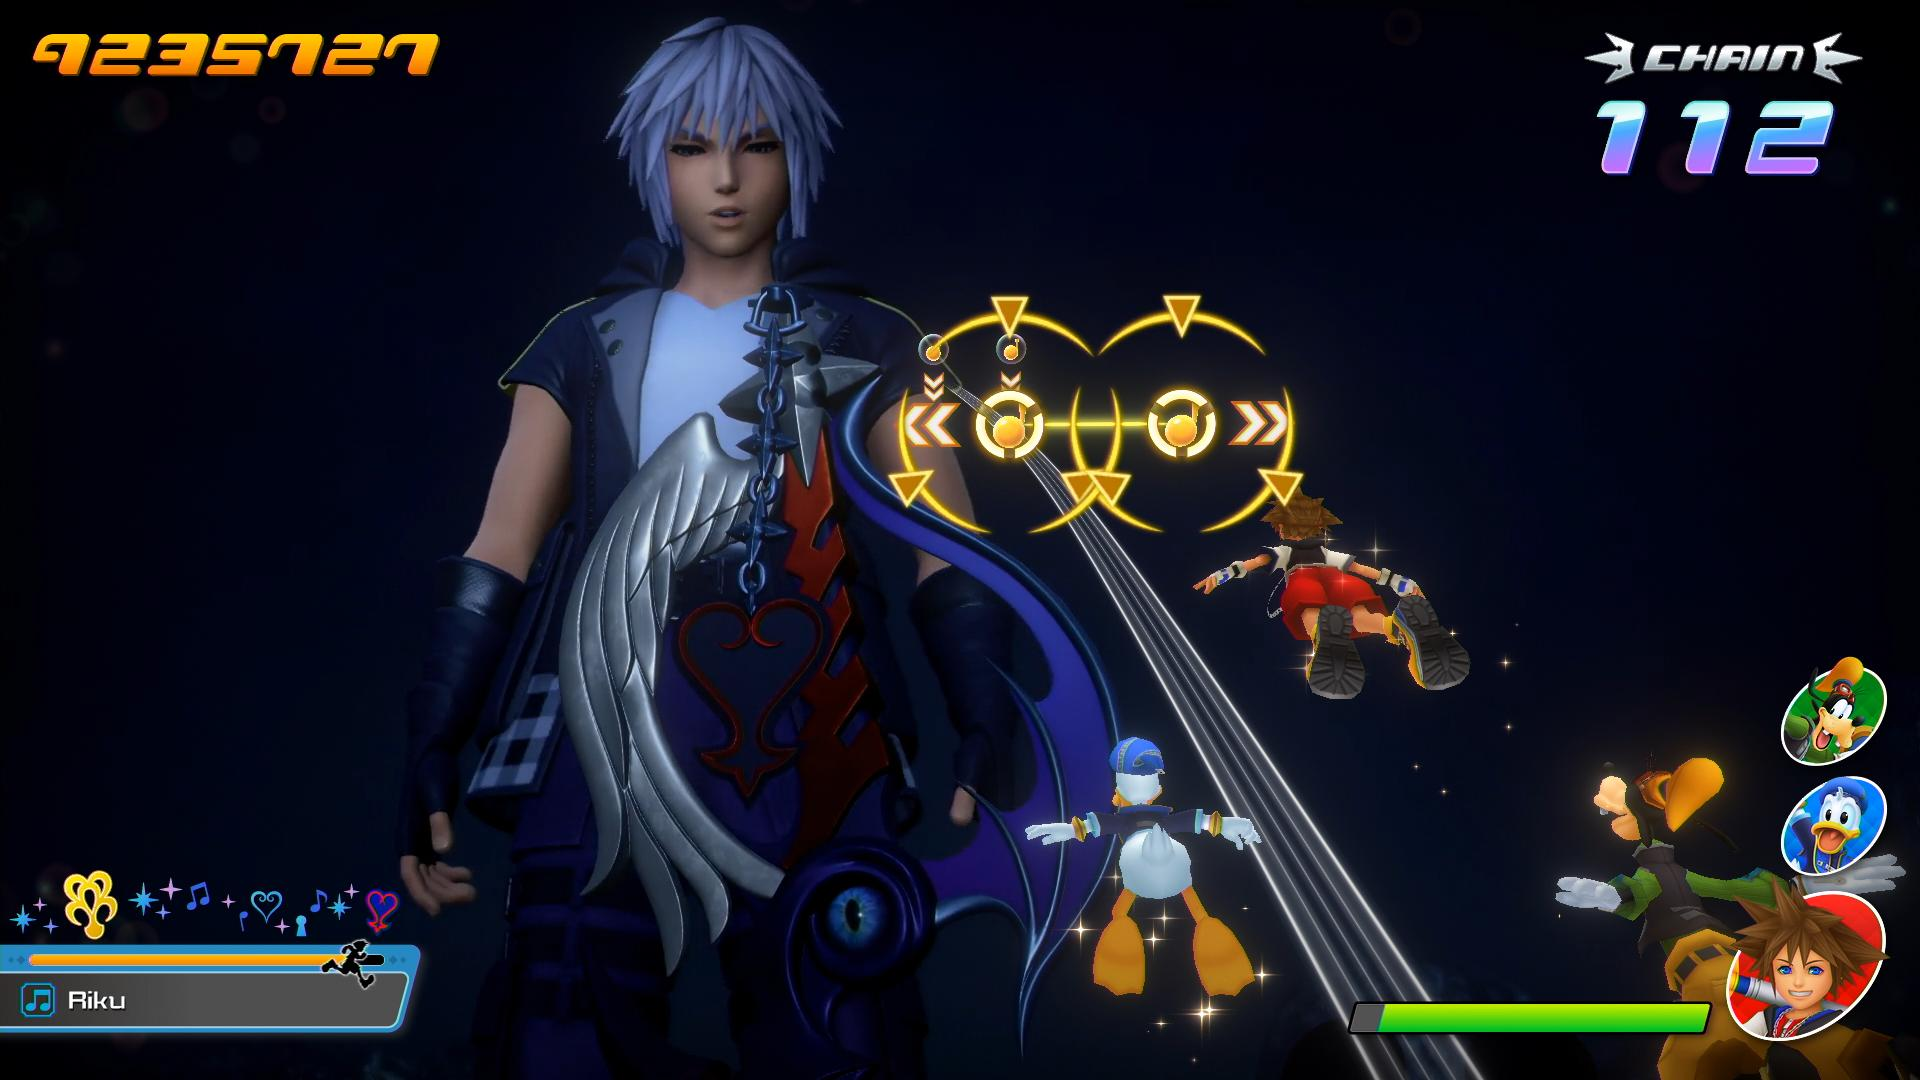 Screenshot From Kingdom Hearts Melody Of Memory Featuring Riku And His Broken Way To The Dawn Keyblade